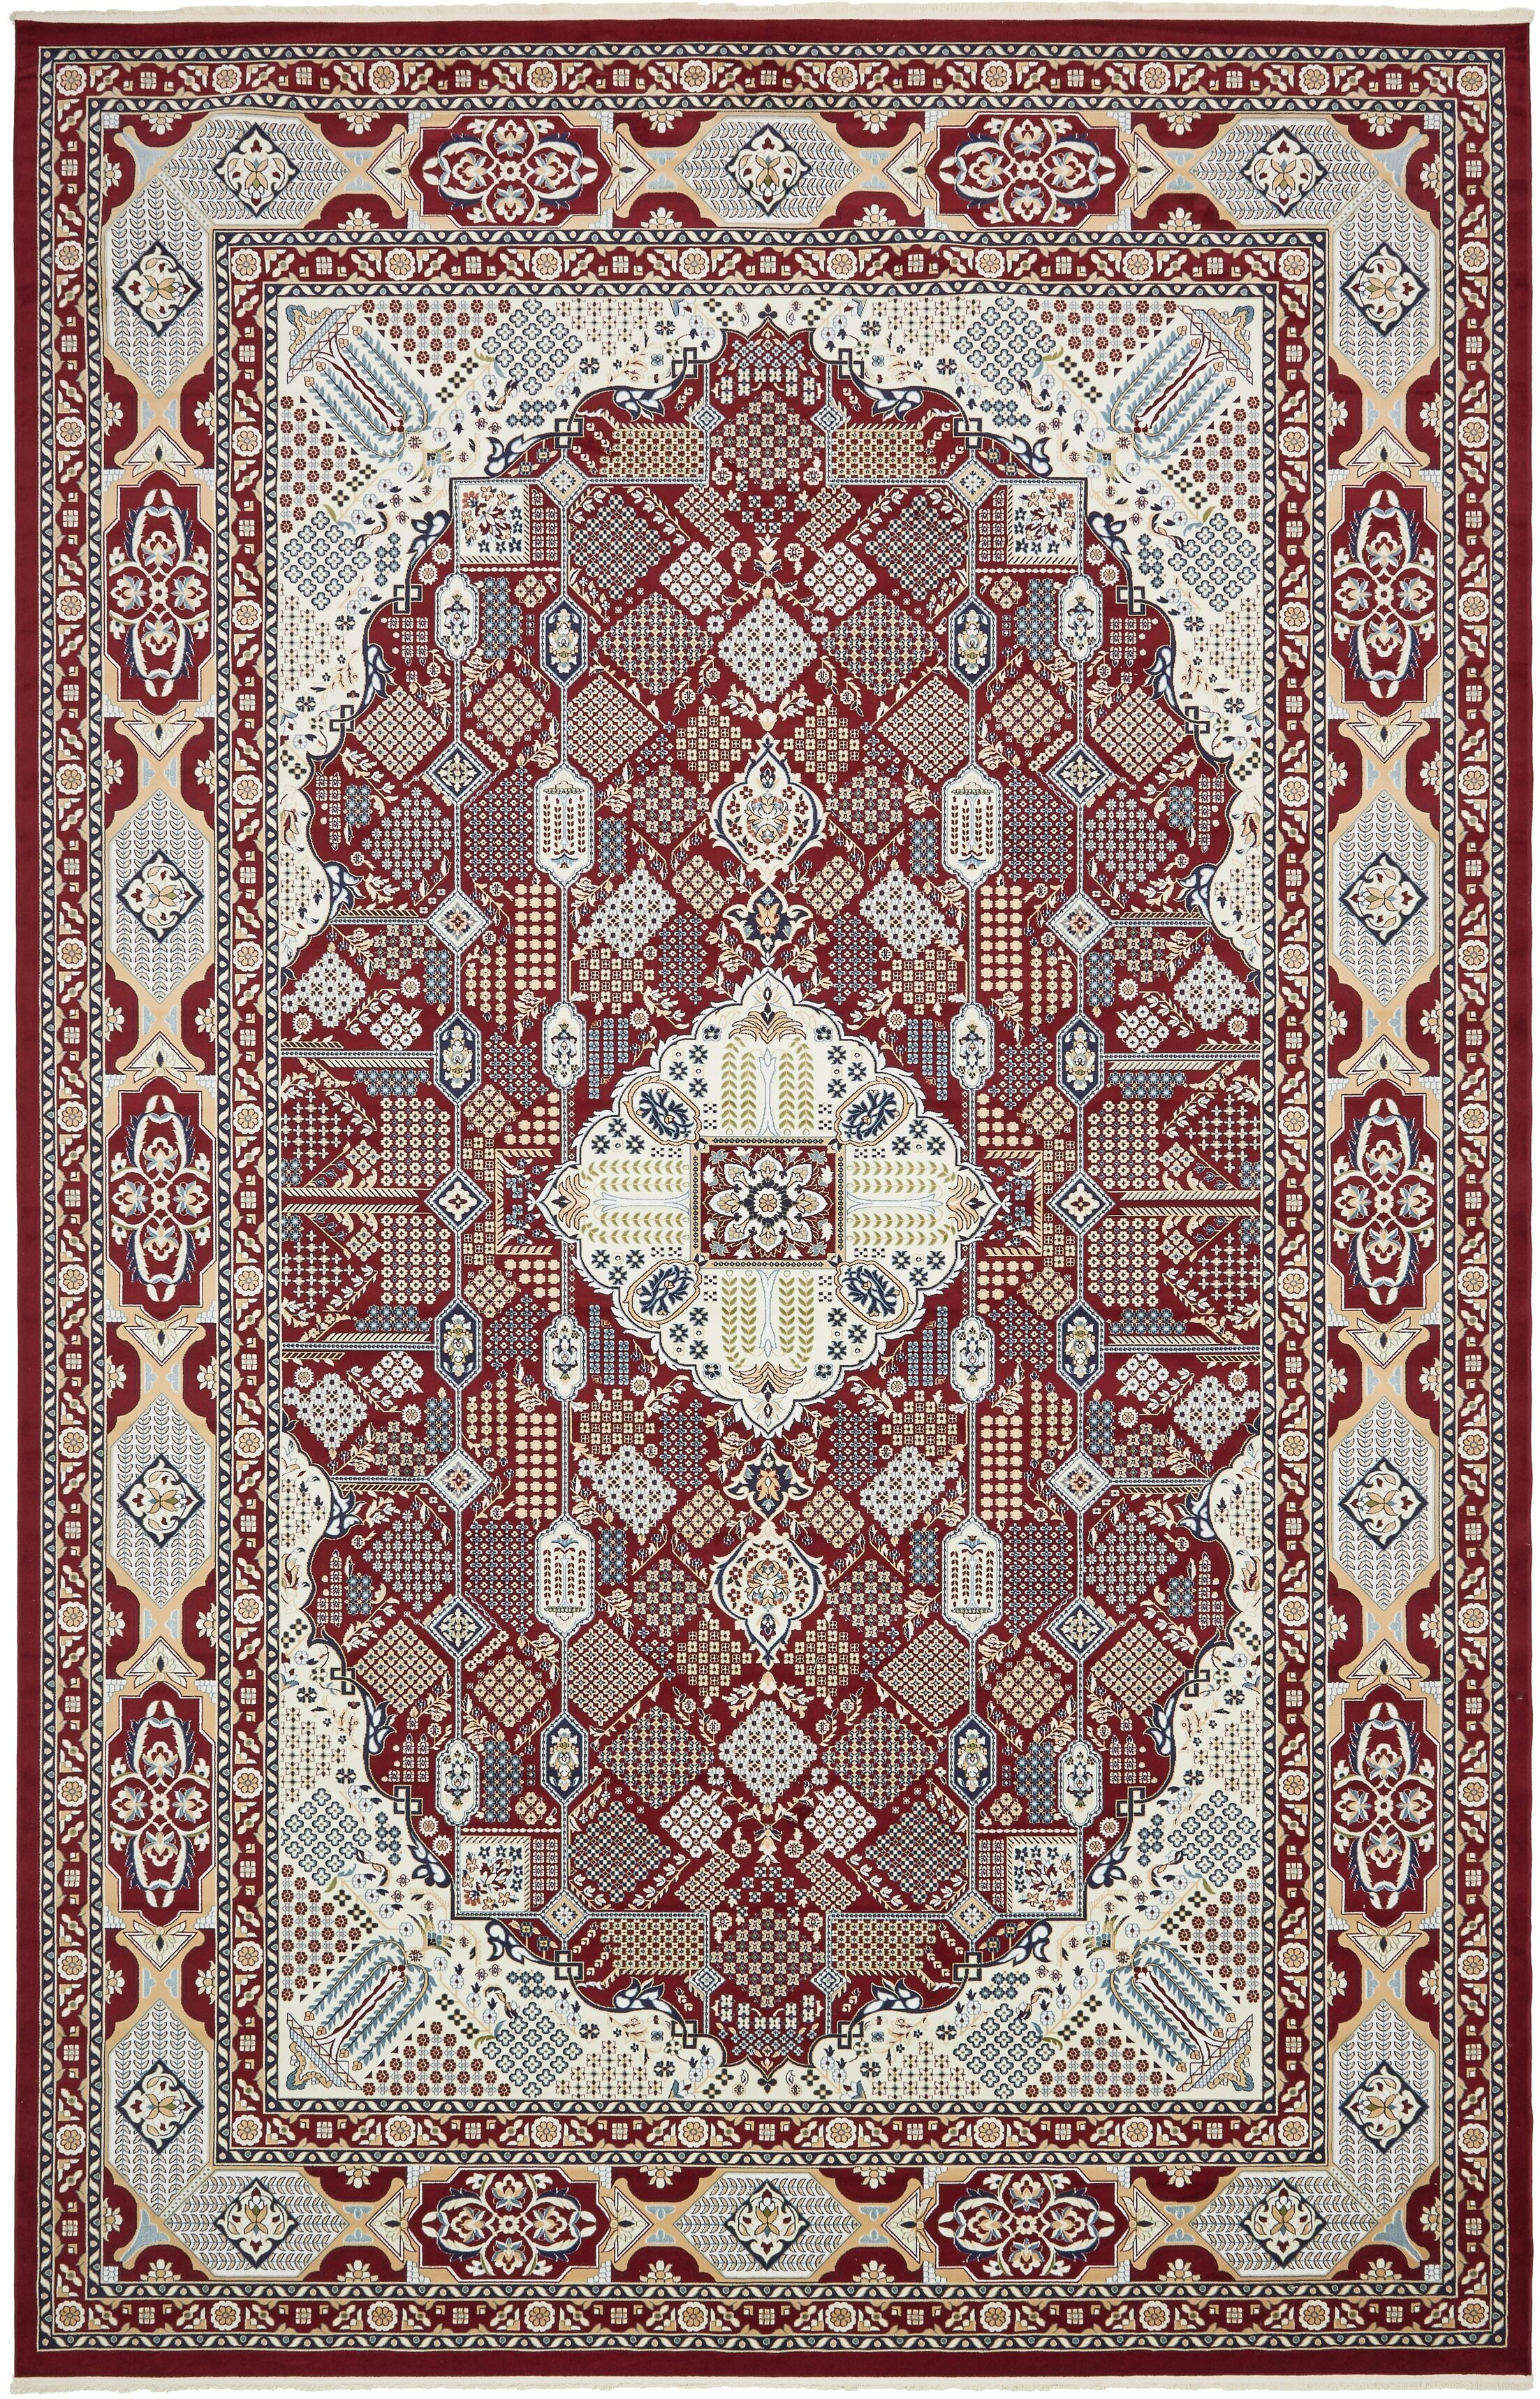 Jackson Burgundy Area Rug Rug Size: Rectangle 13' x 19'8